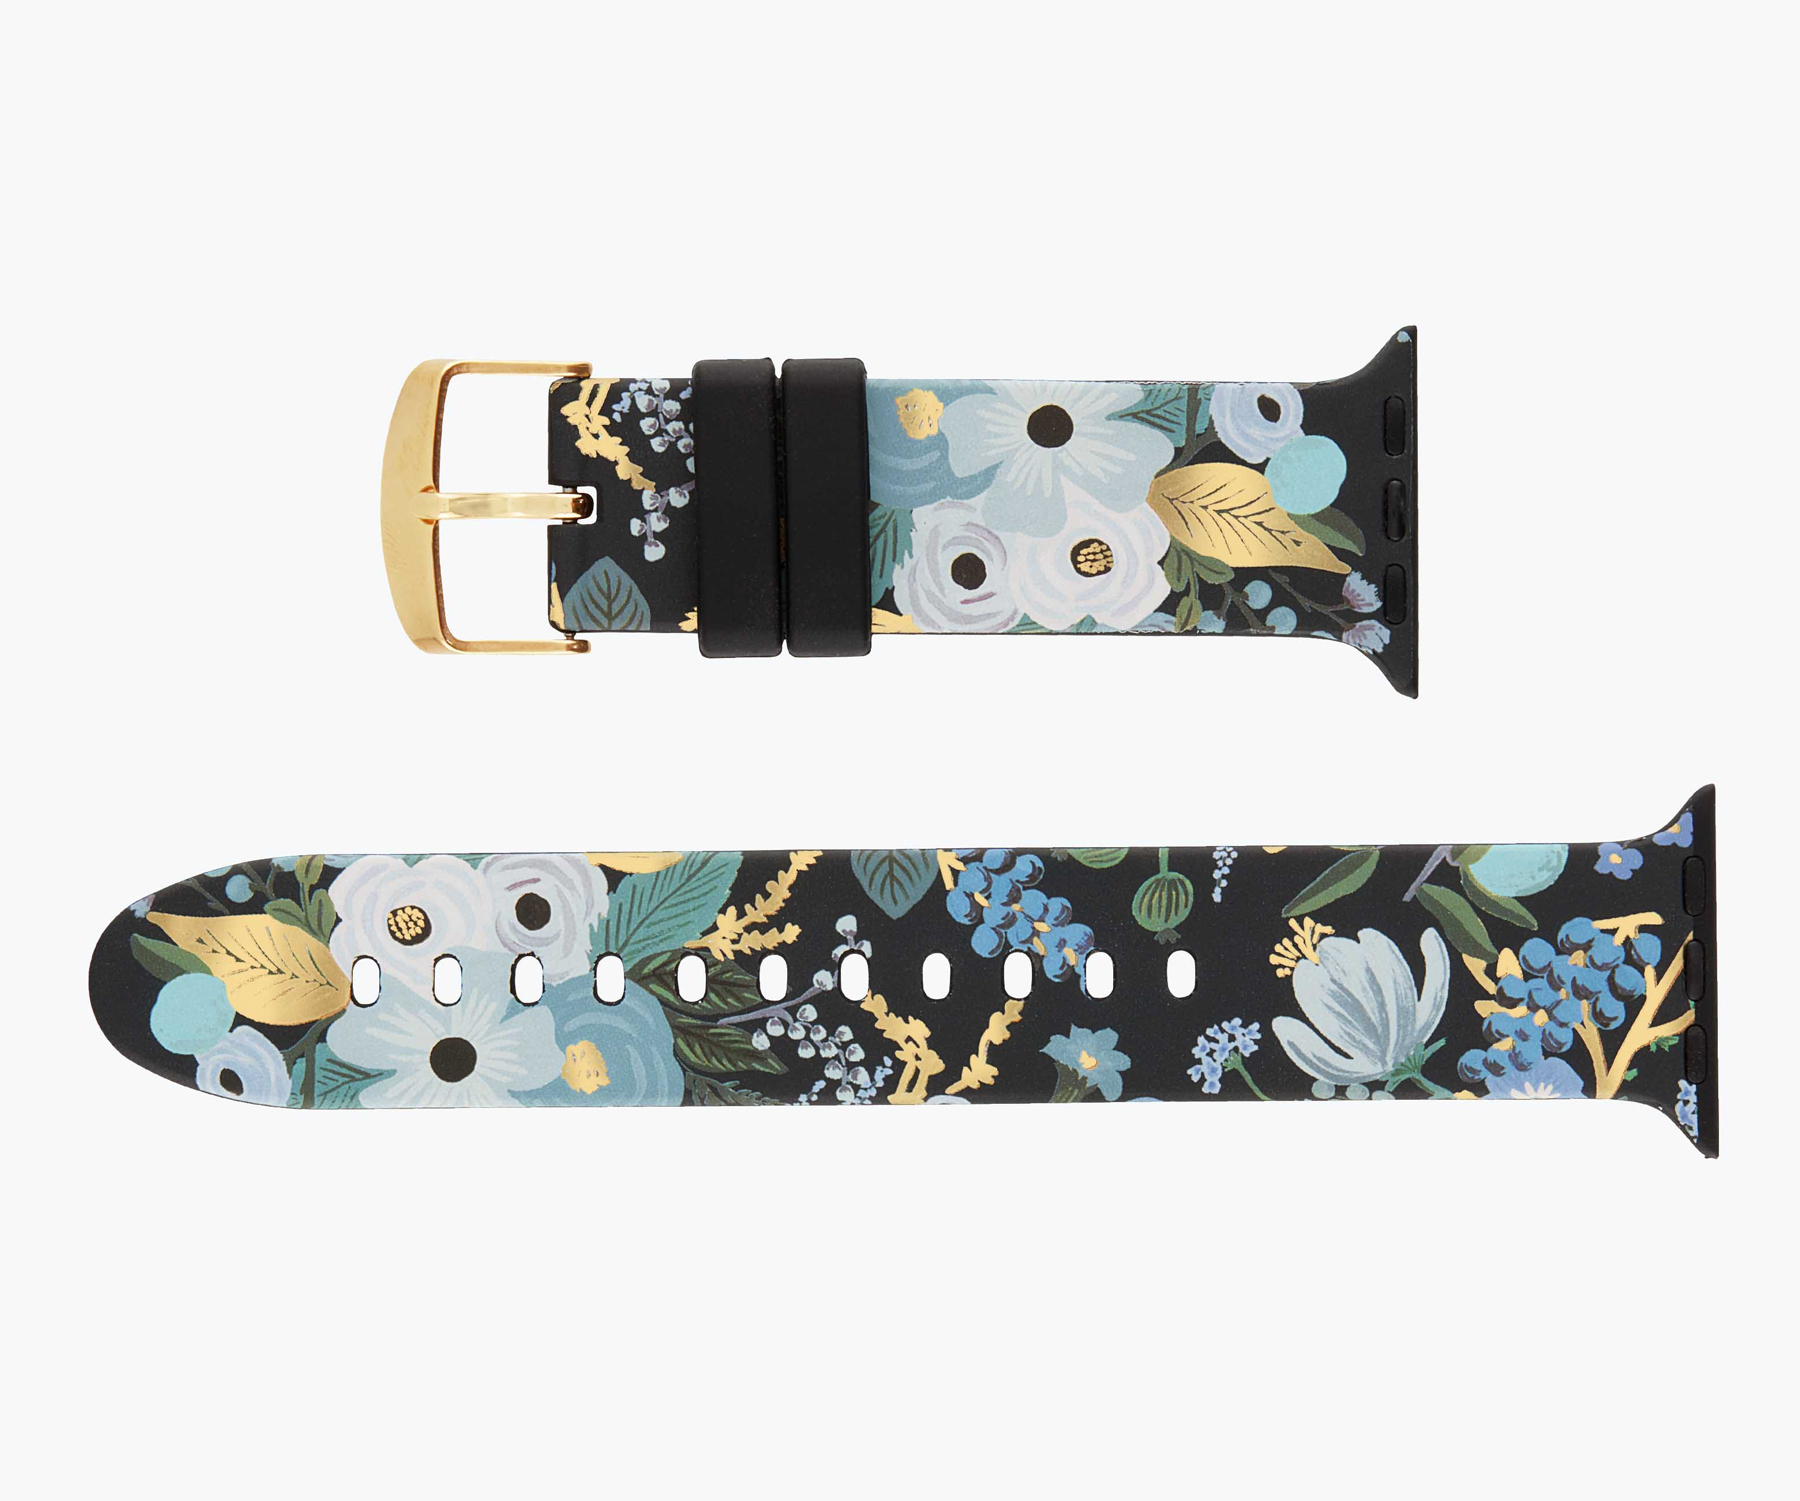 Mother's Day gifts ideas - Rifle Paper Co. Garden Party Blue Apple Watch Band